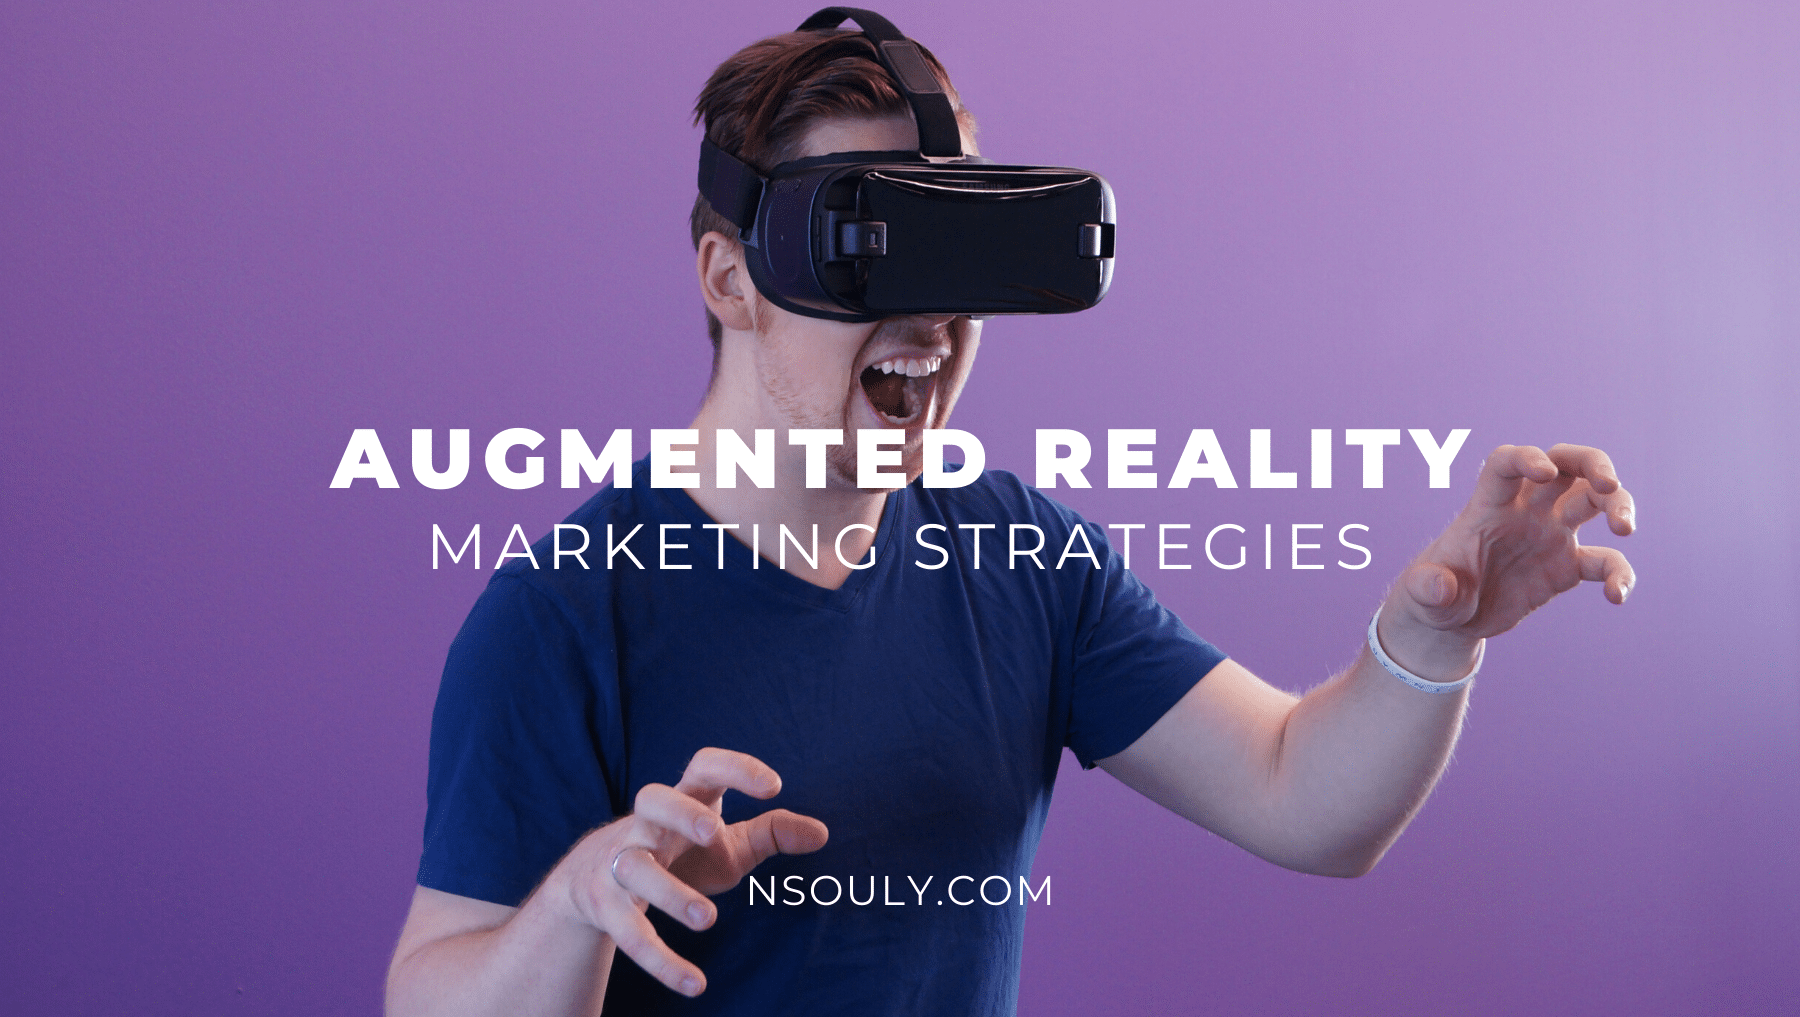 How to Use Augmented Reality Marketing Strategies to Boost Your Brand